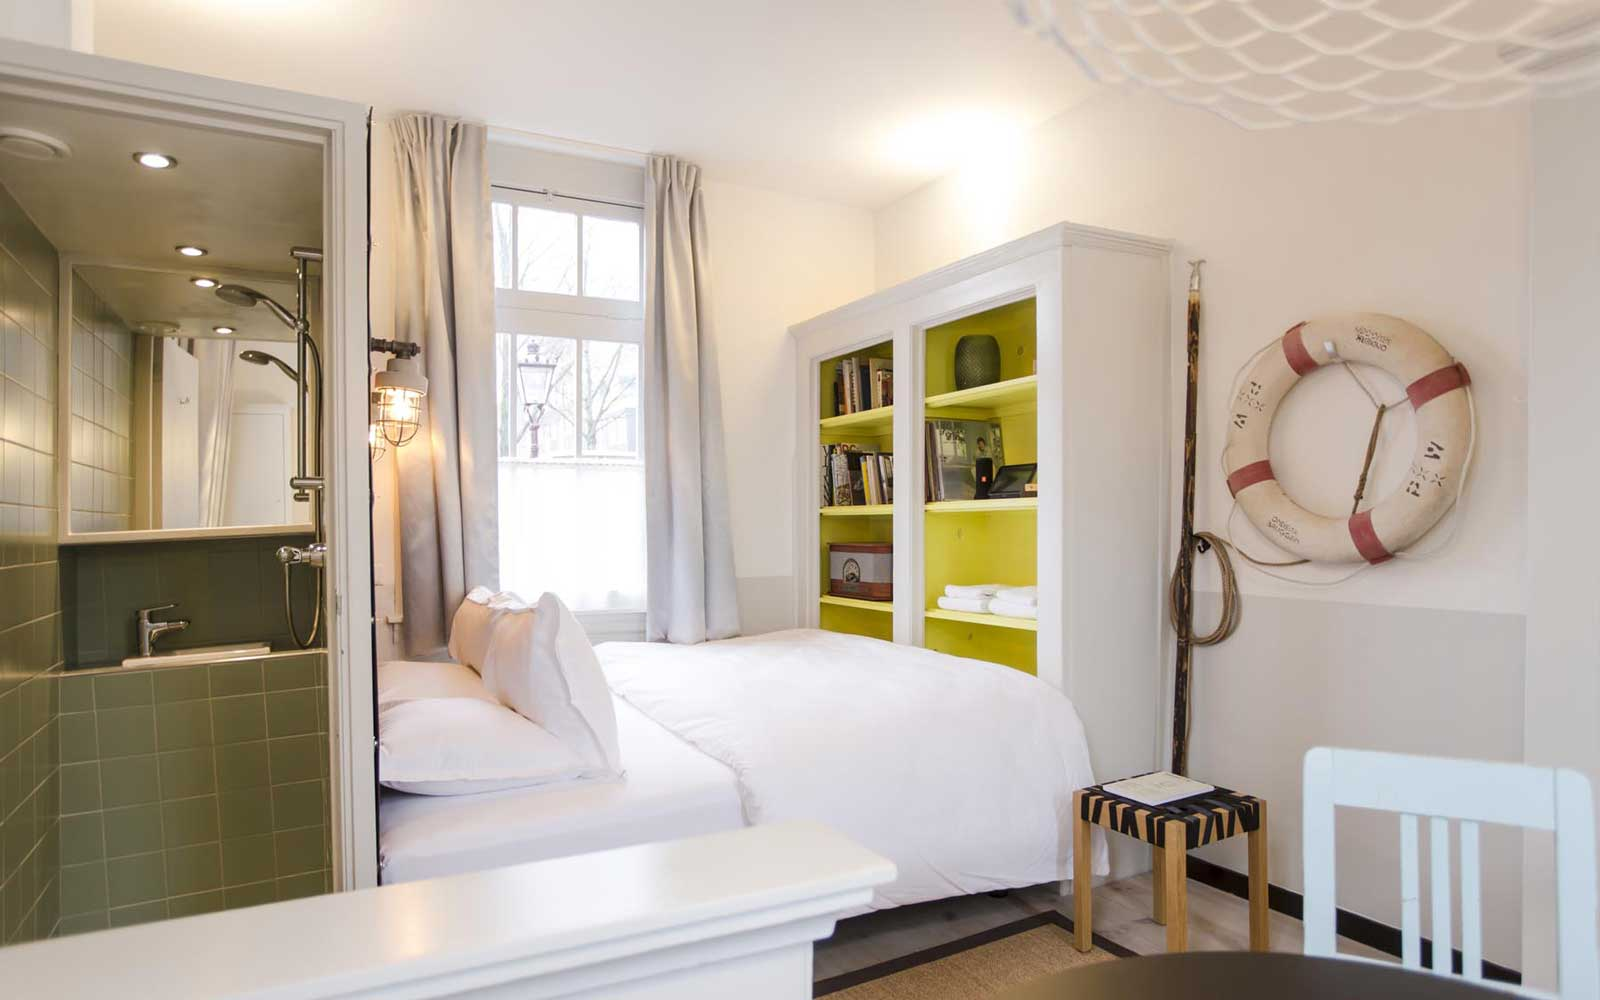 Amsterdam SWEETS Hotel